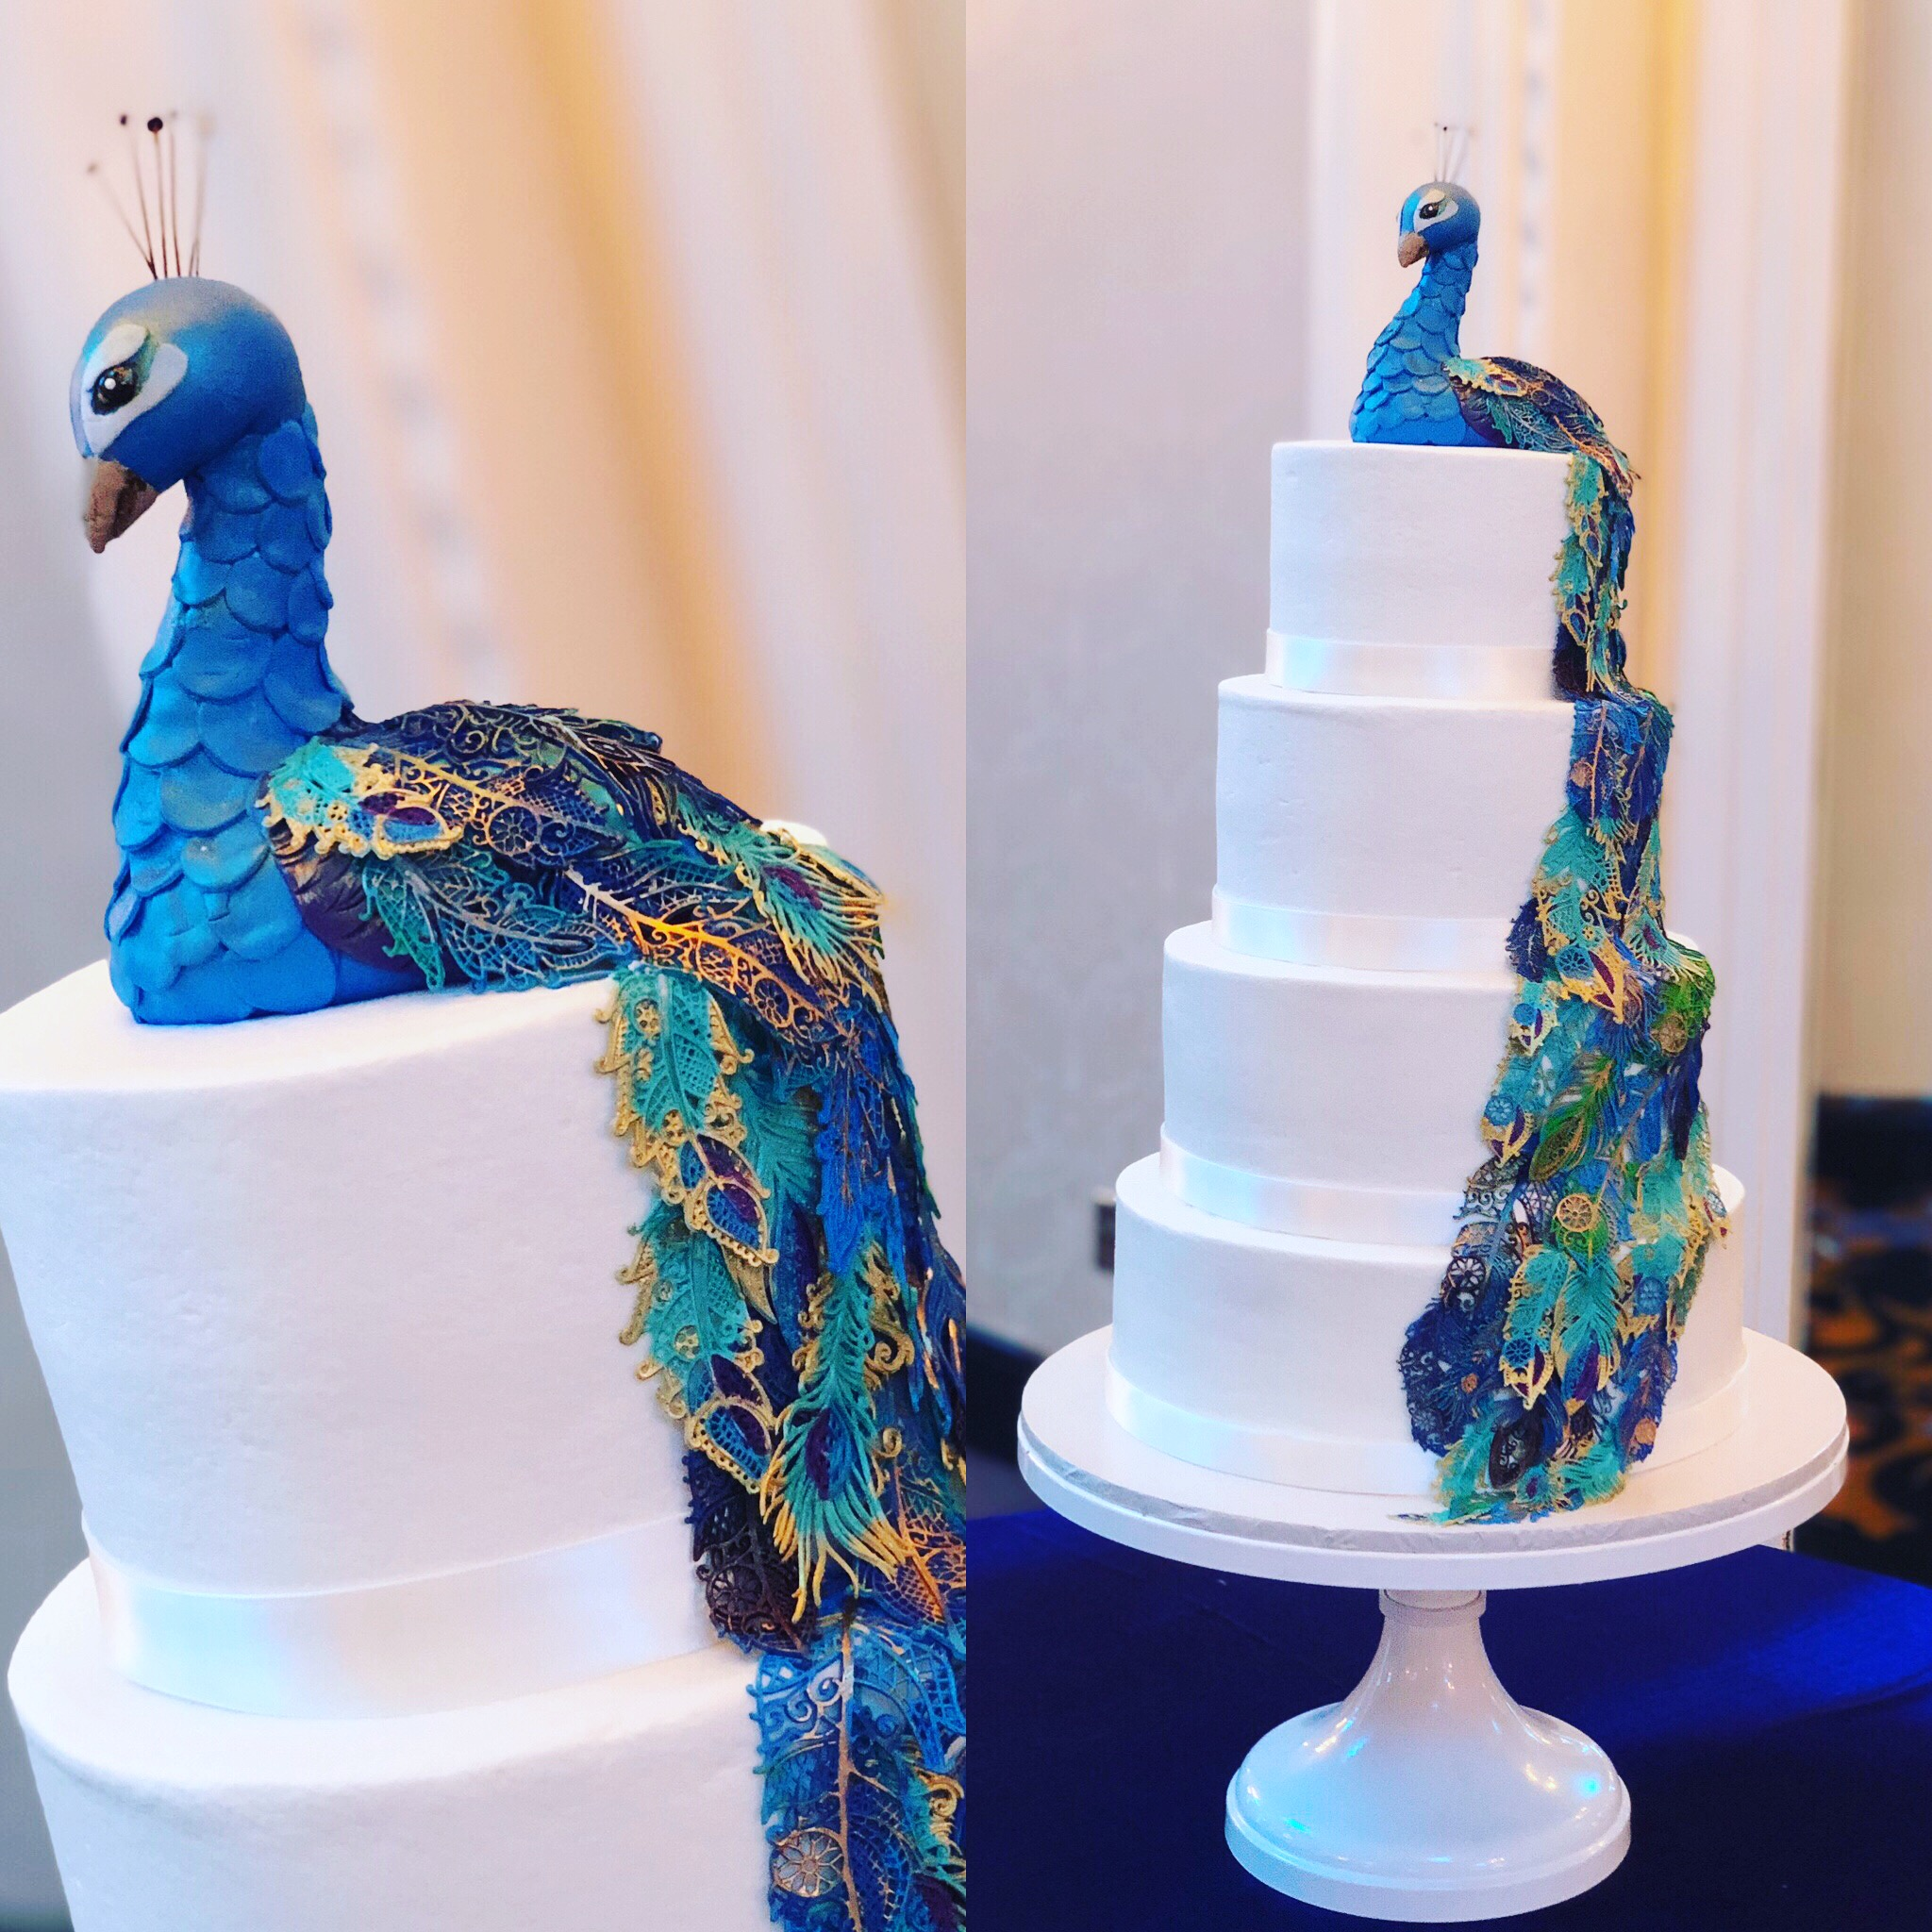 Peacock cake close up